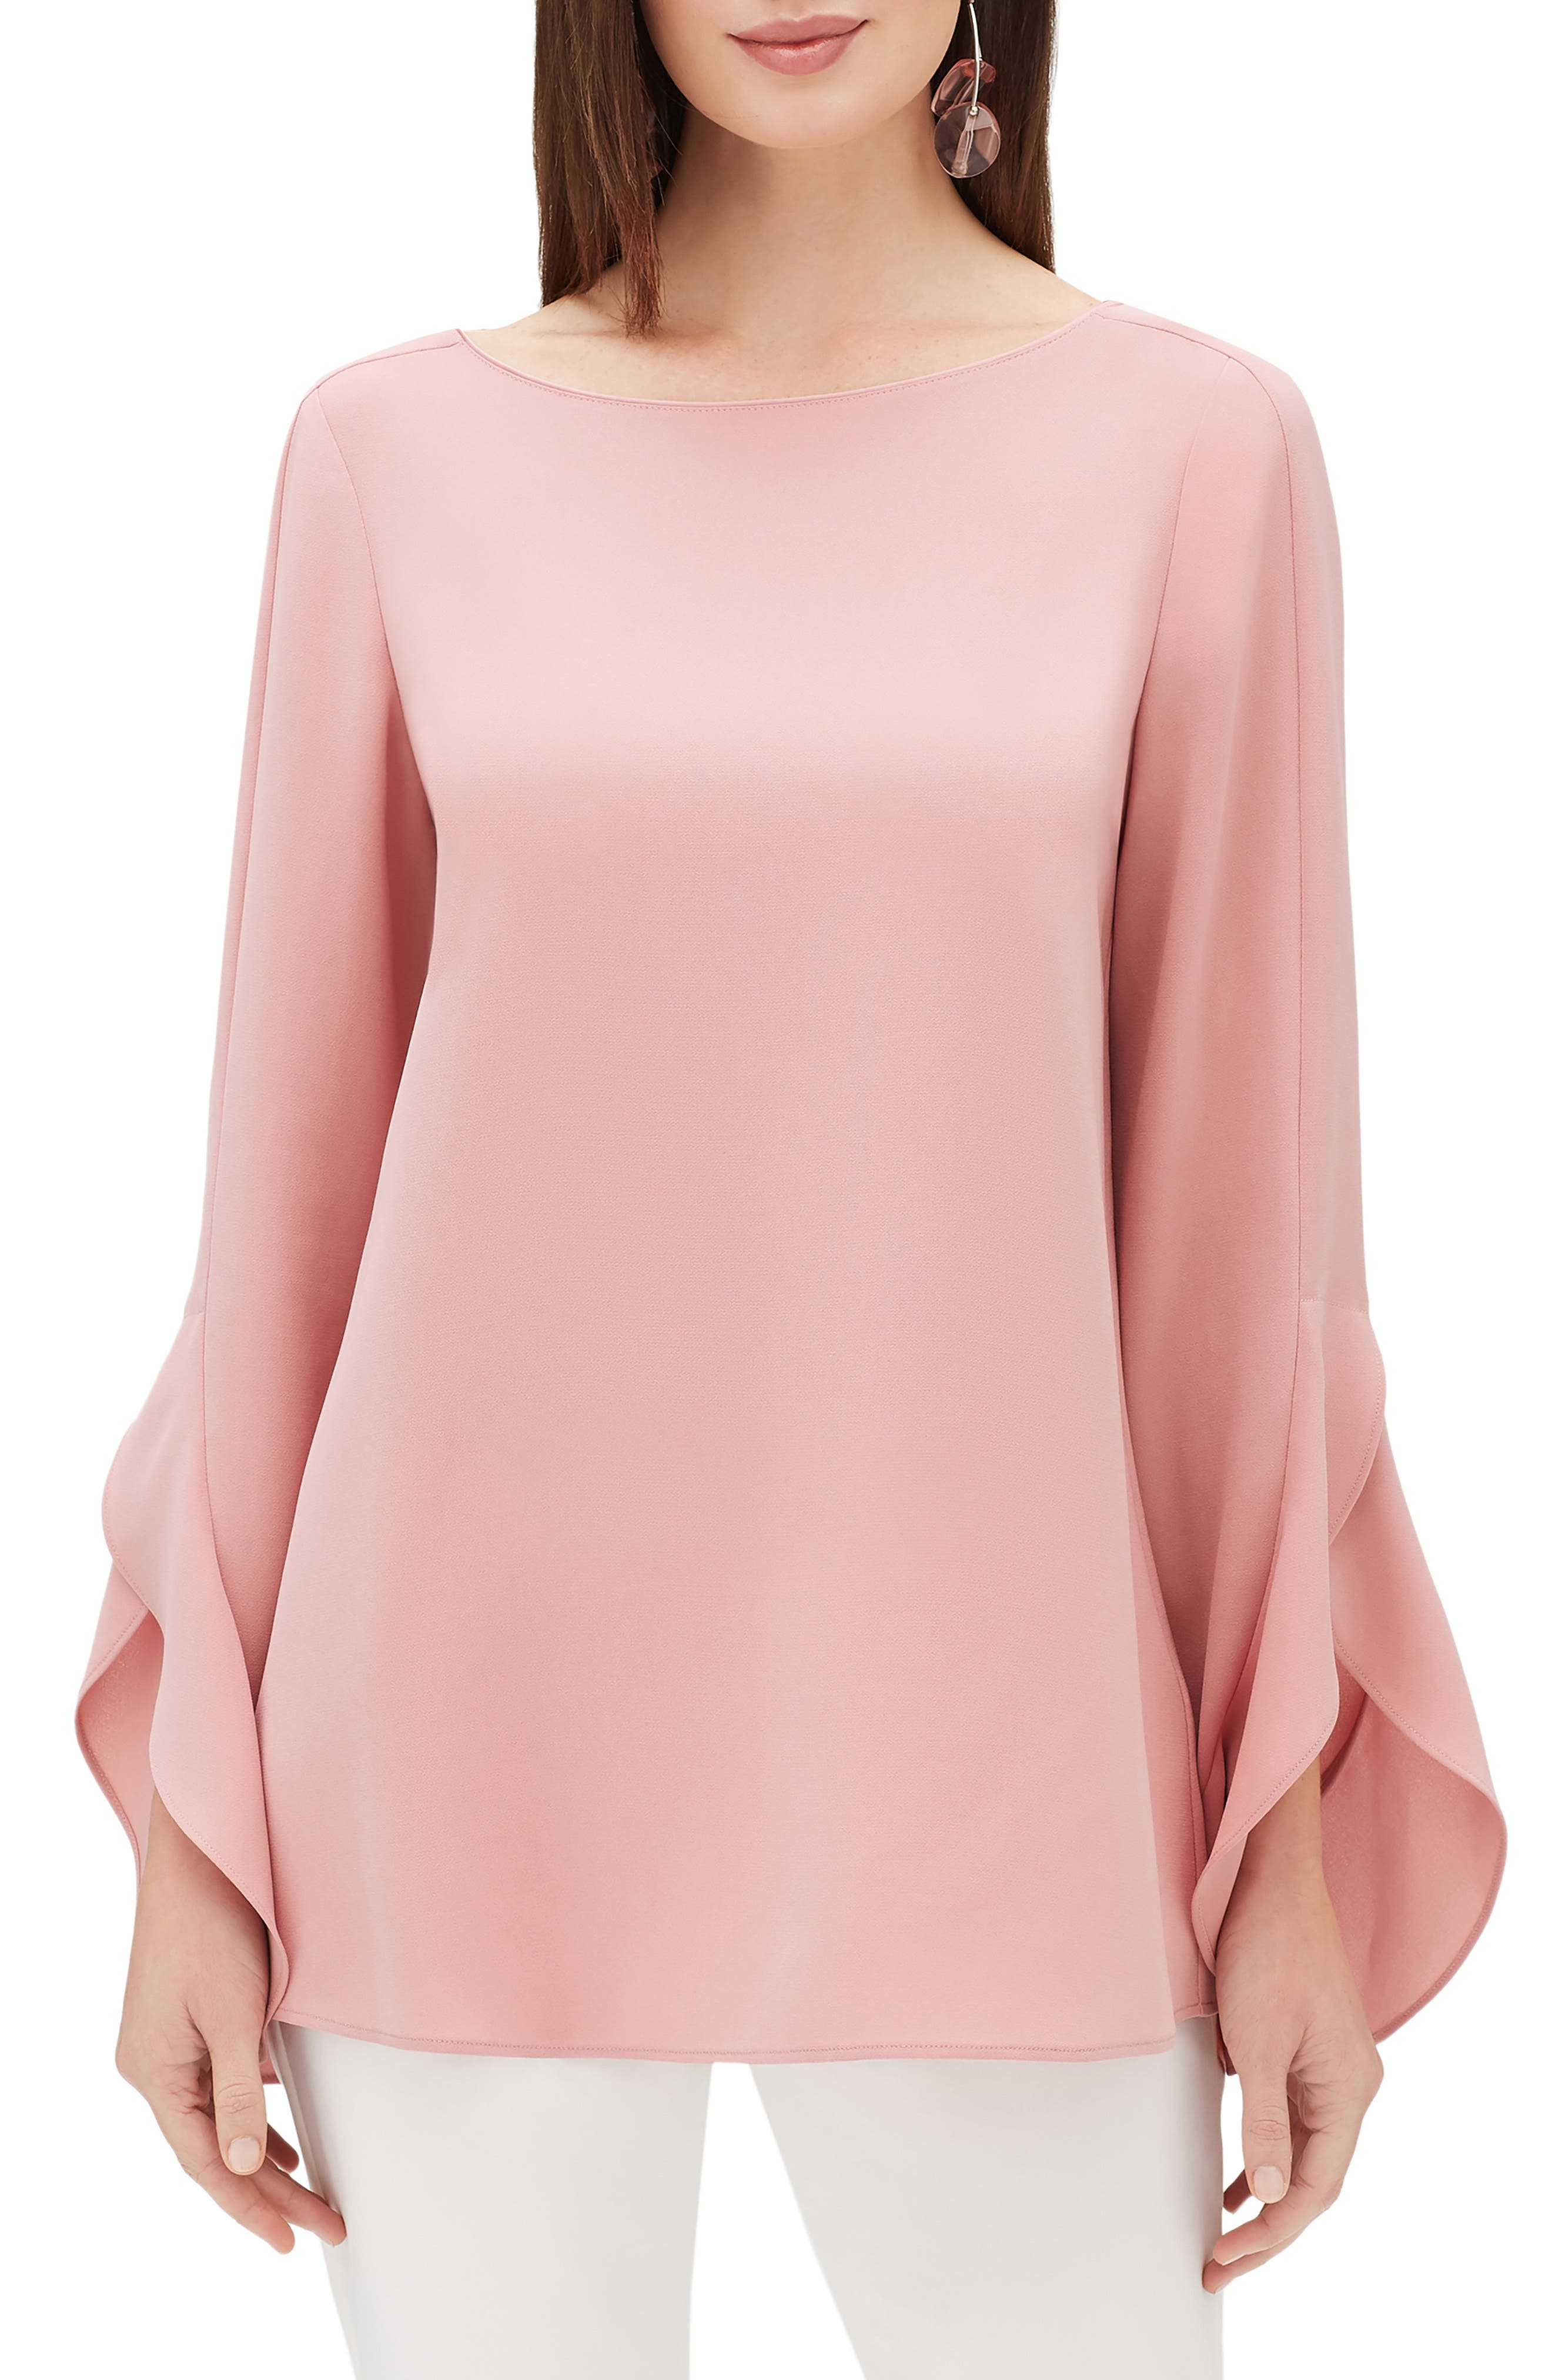 LAFAYETTE 148 NEW YORK,                             Emory Finesse Crepe Blouse,                             Main thumbnail 1, color,                             650